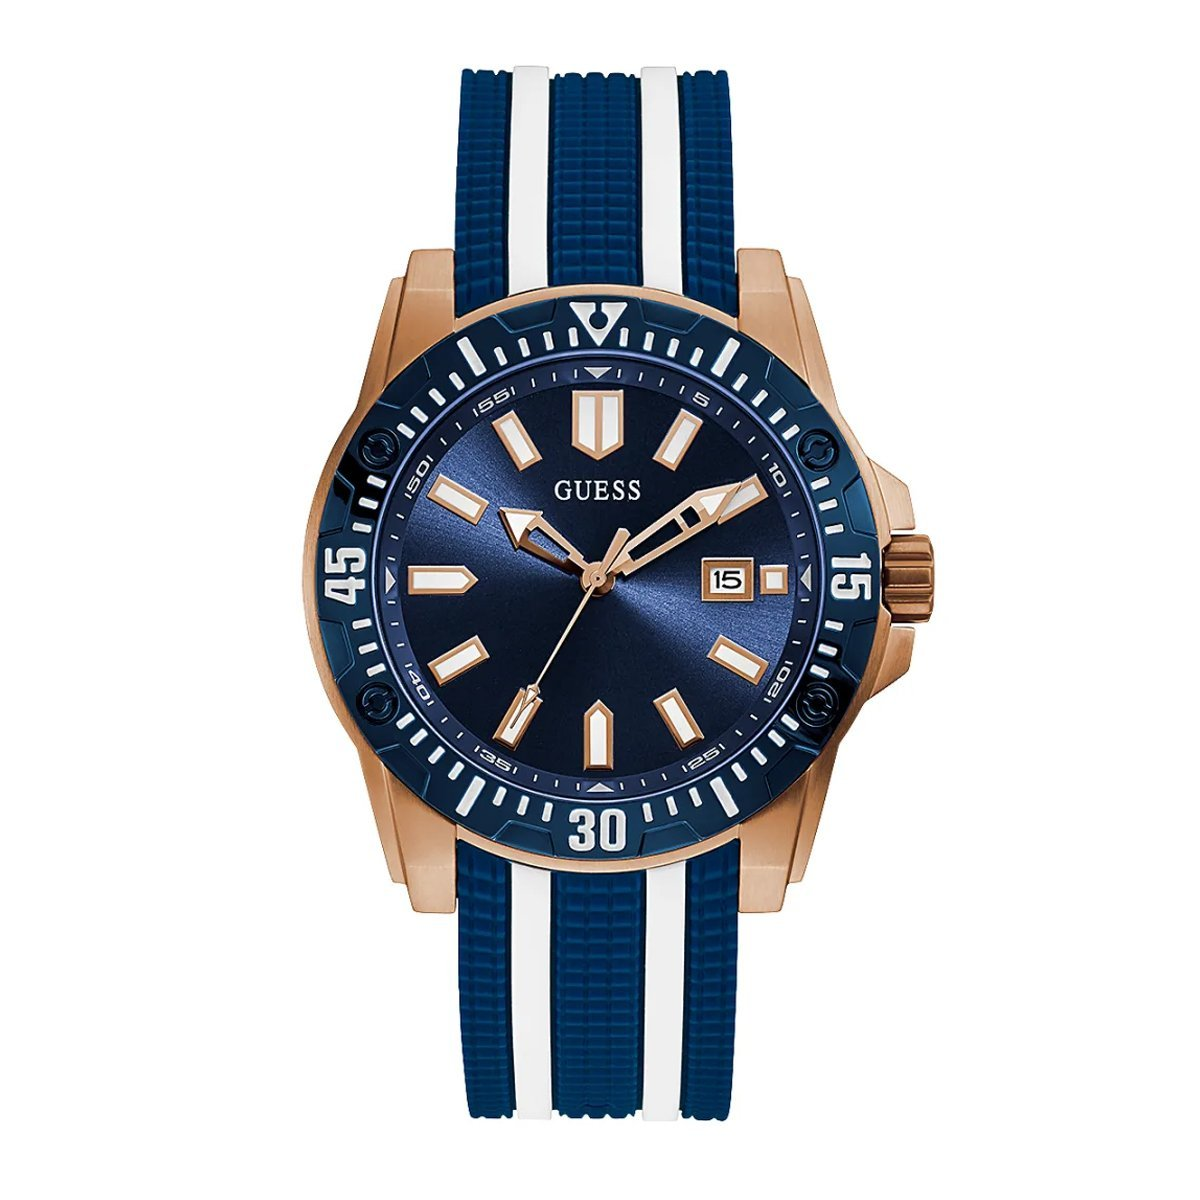 Guess Skipper Blue Rose Gold - Watches & Crystals